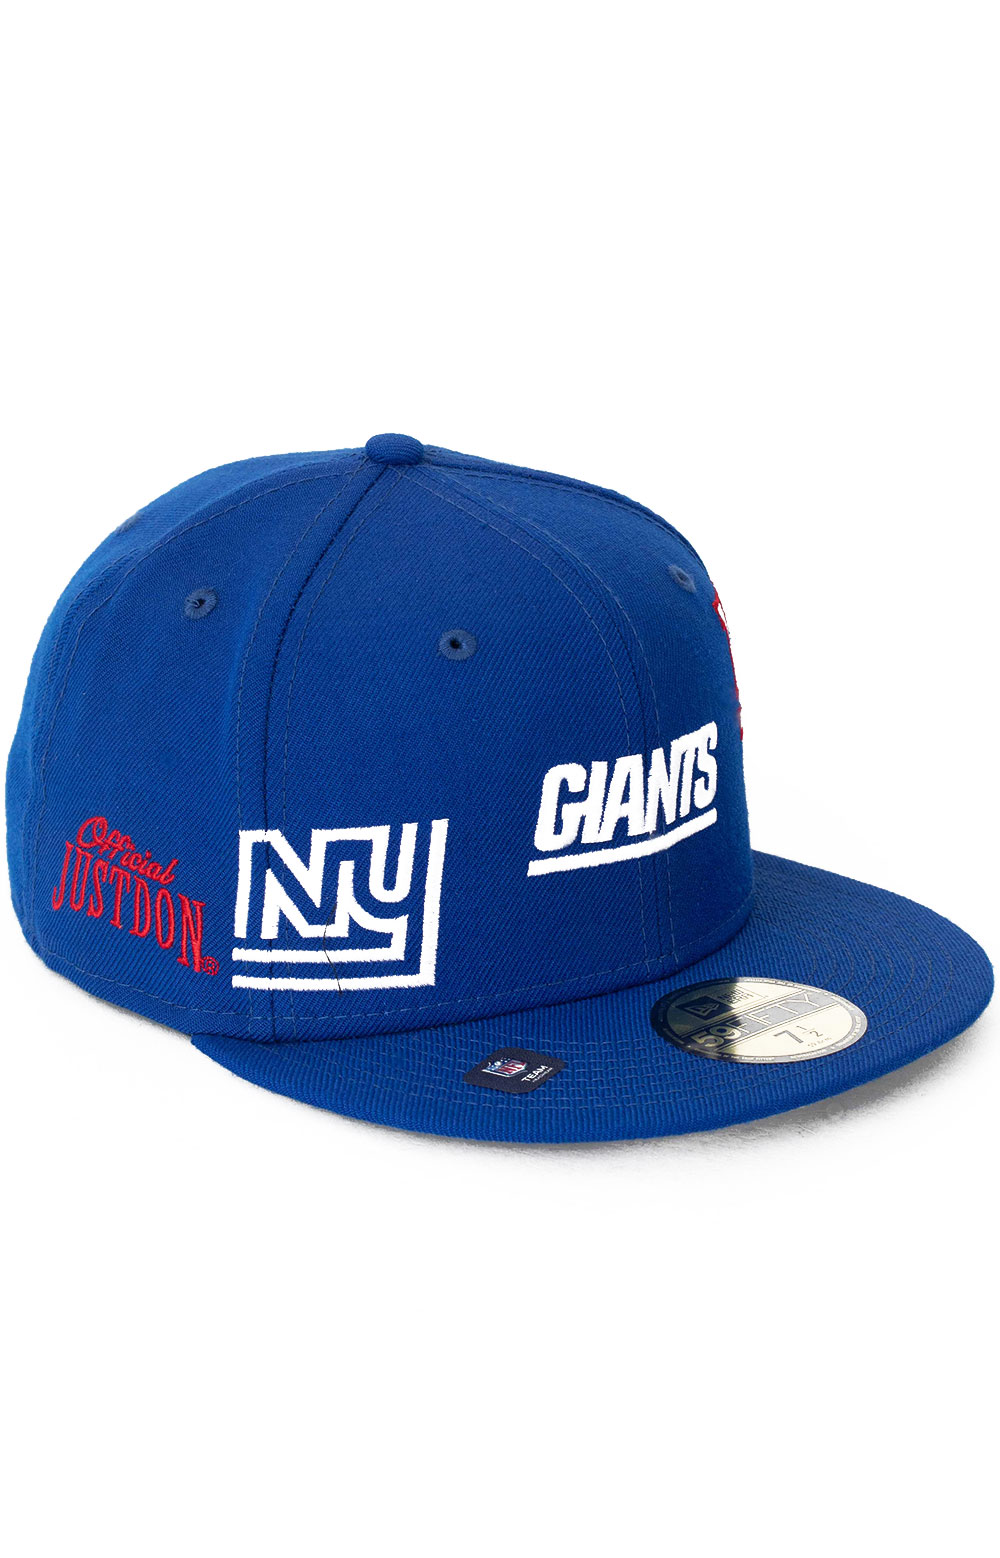 NFL Elements 59Fifty Fitted Hat - New York Giants  3